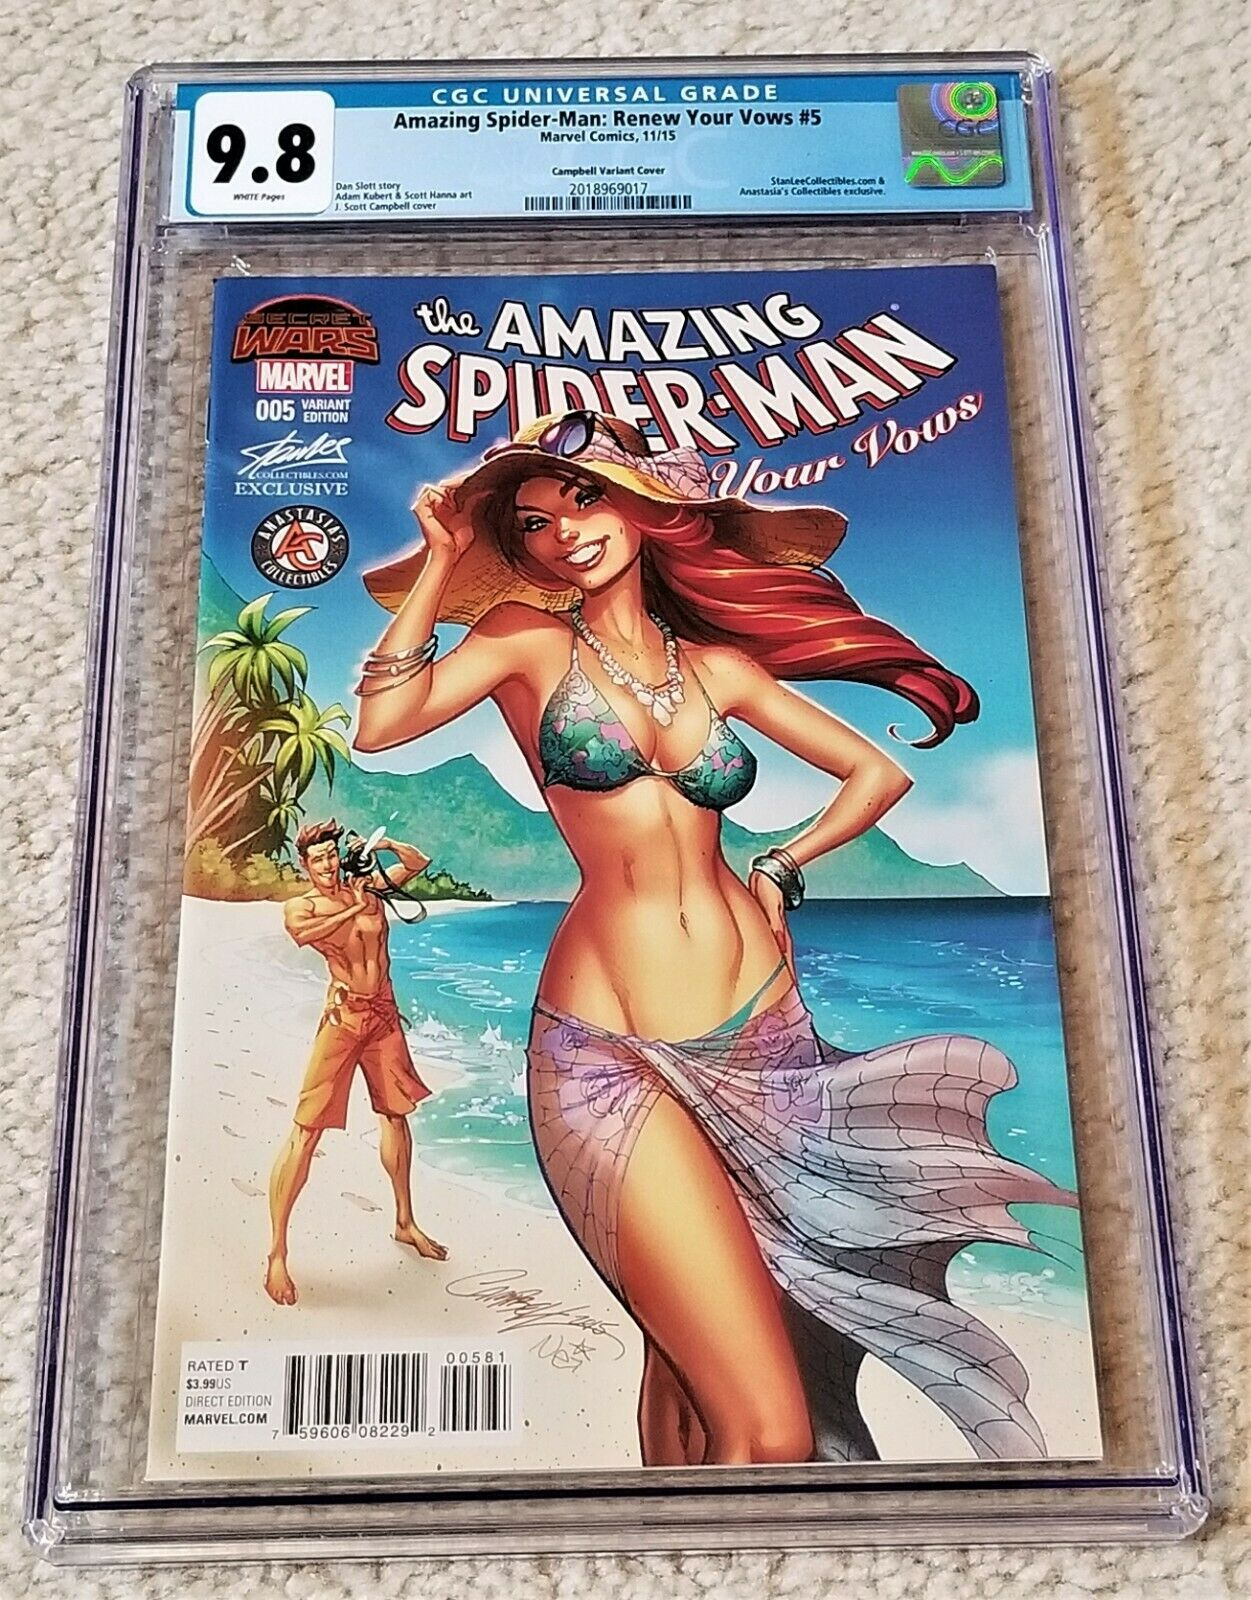 Amazing Spider-man Renew Your Vows 5 J Scott Campbell Mary Jane Stan Lee Variant Marvel Comics East Side Comics Exclusive CGC